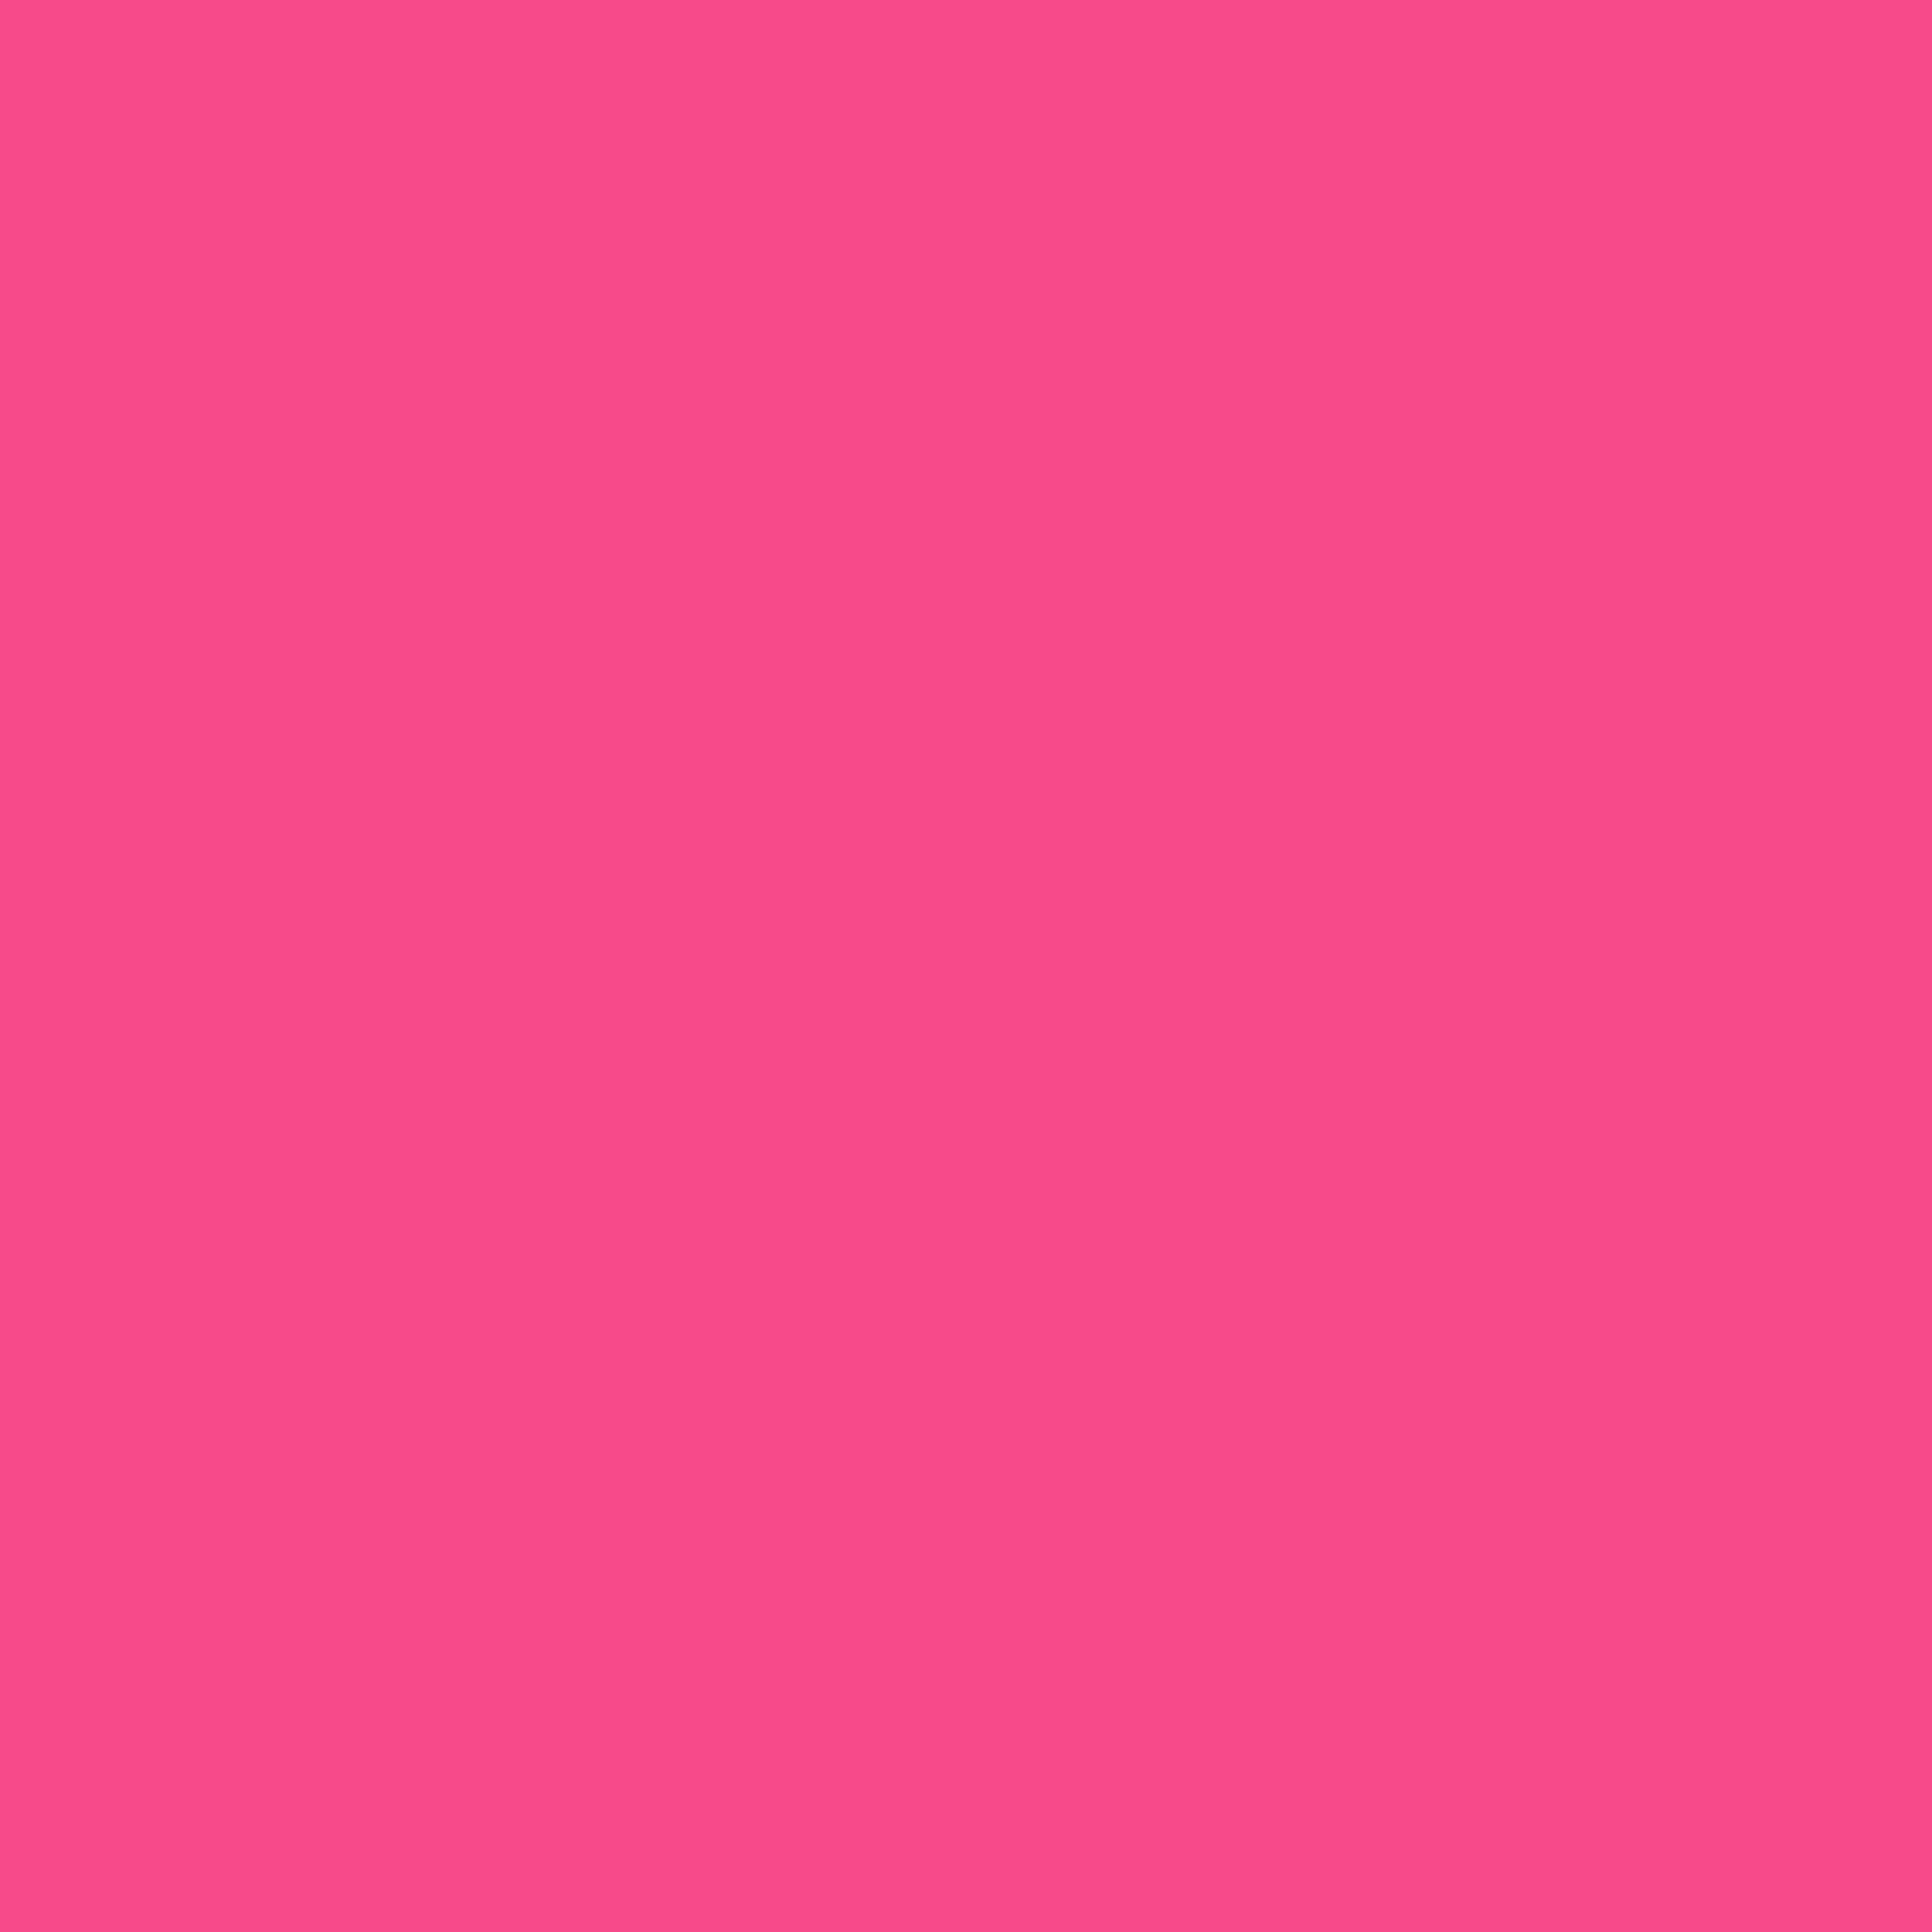 2732x2732 French Rose Solid Color Background